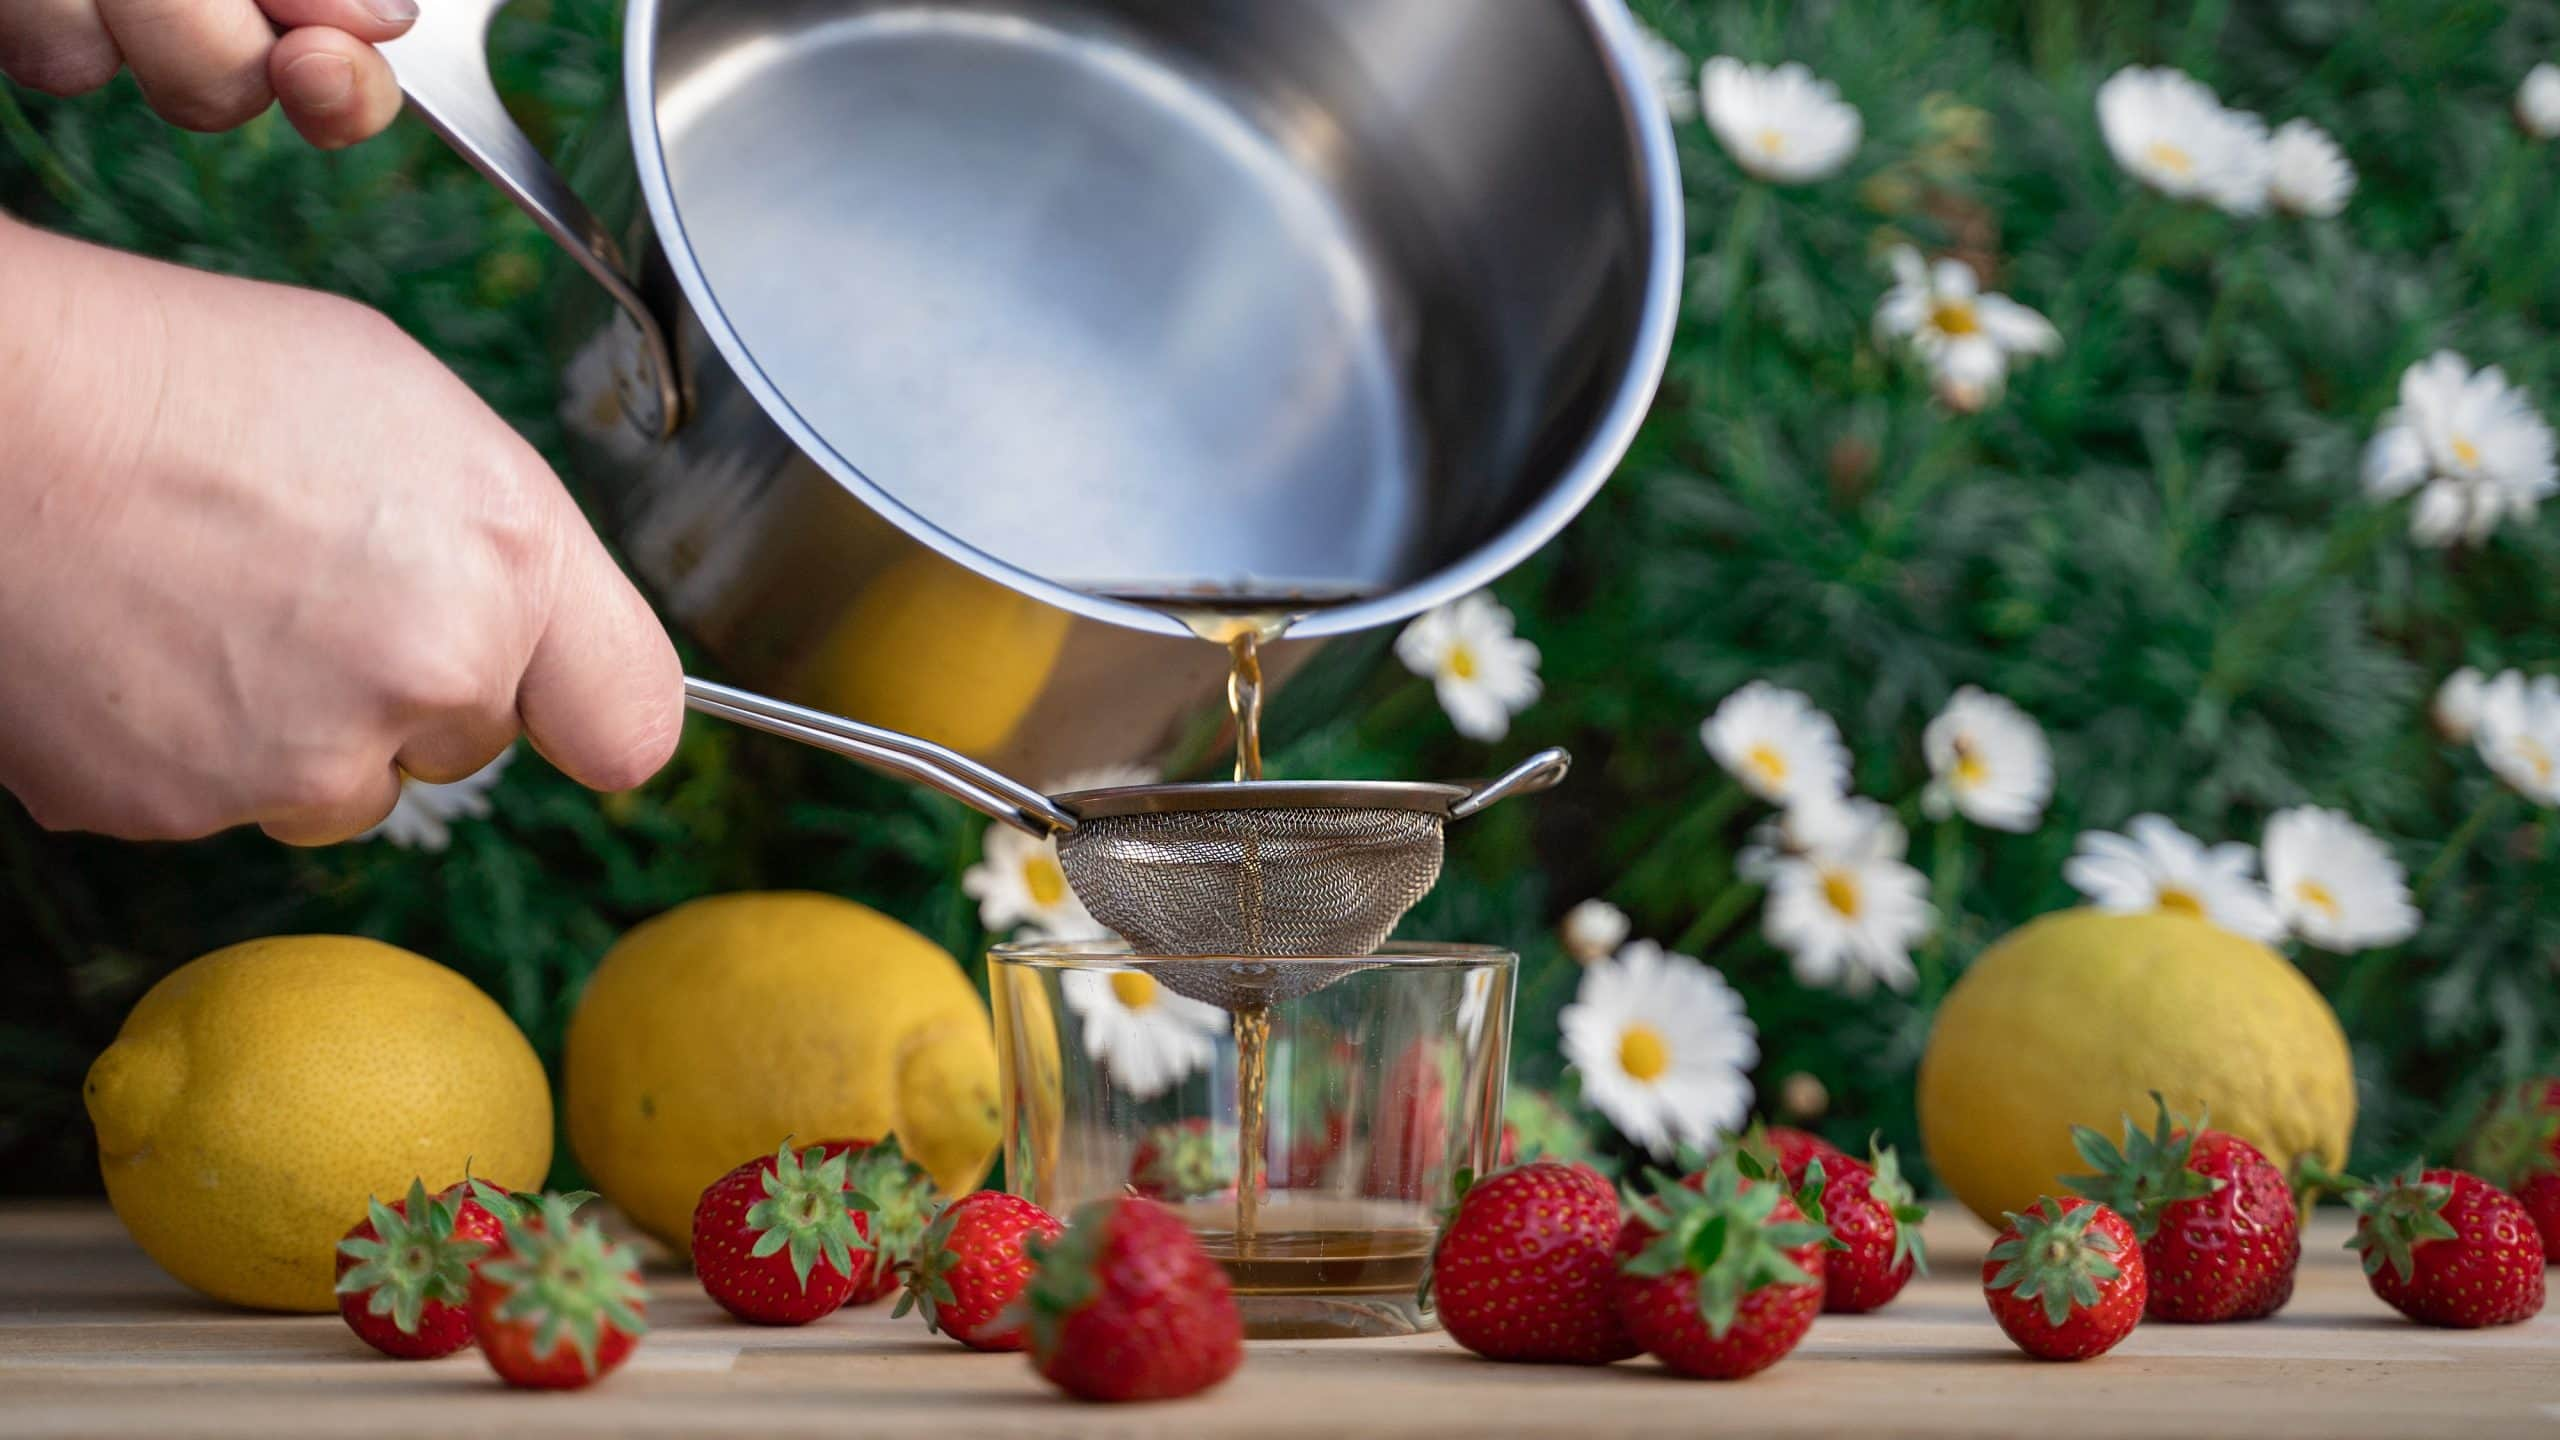 The Best Teas To Pair With Your Barbecue - Photo of straining tea with strawberries and lemons nearby